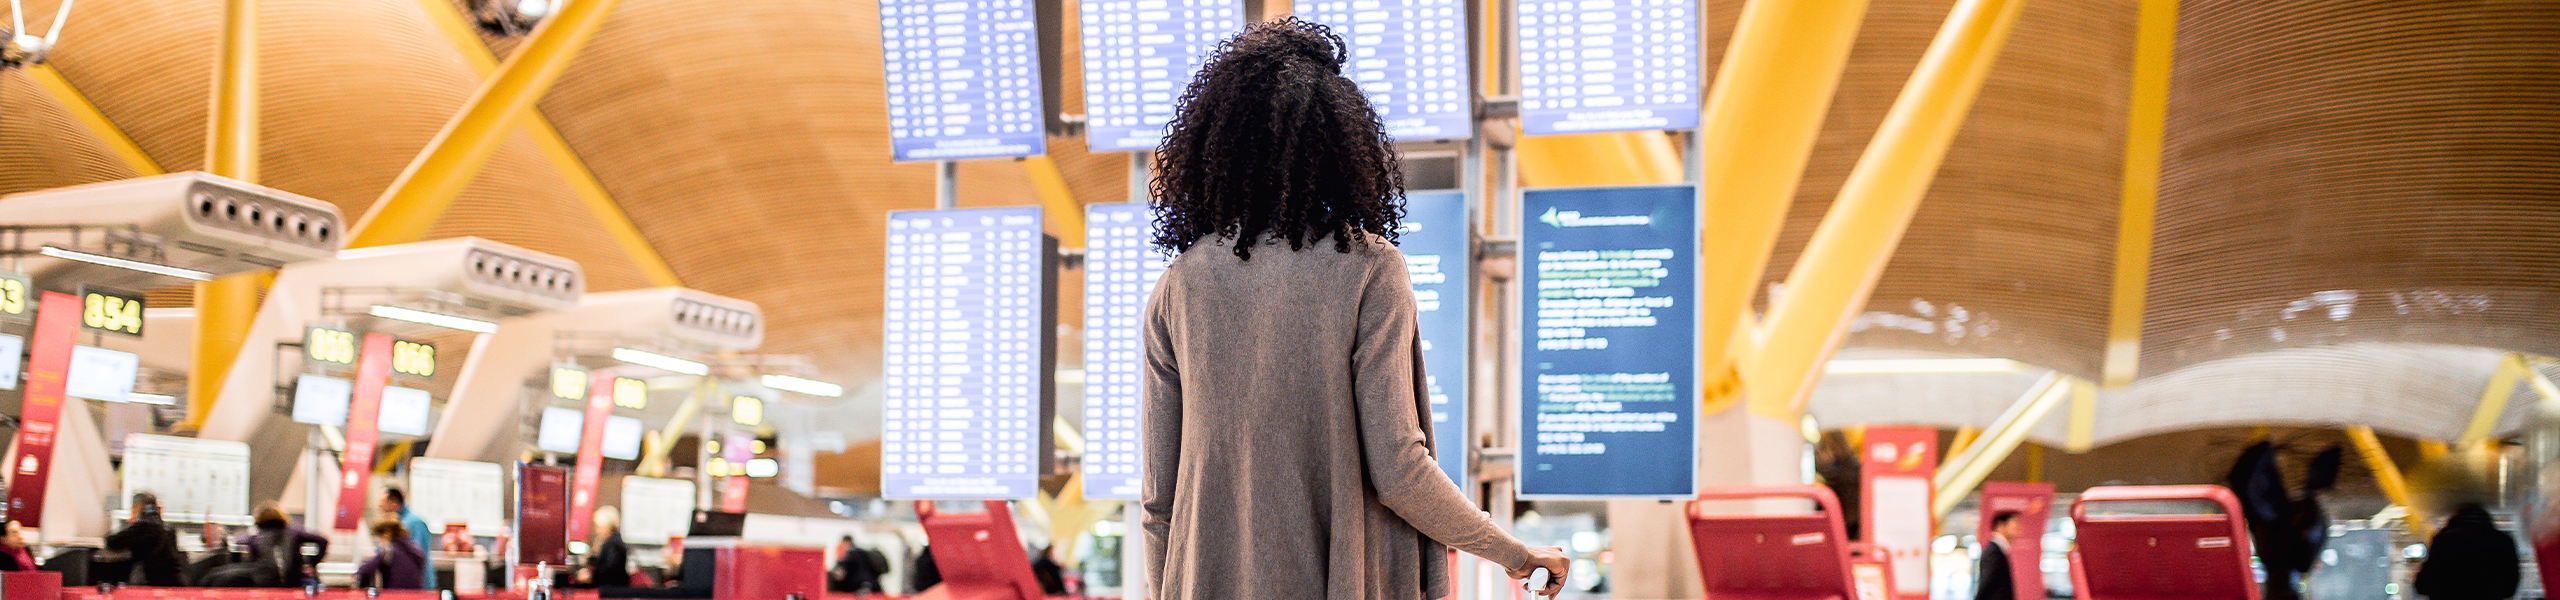 Woman looking at the timetable information panel in the airport with a suitcase